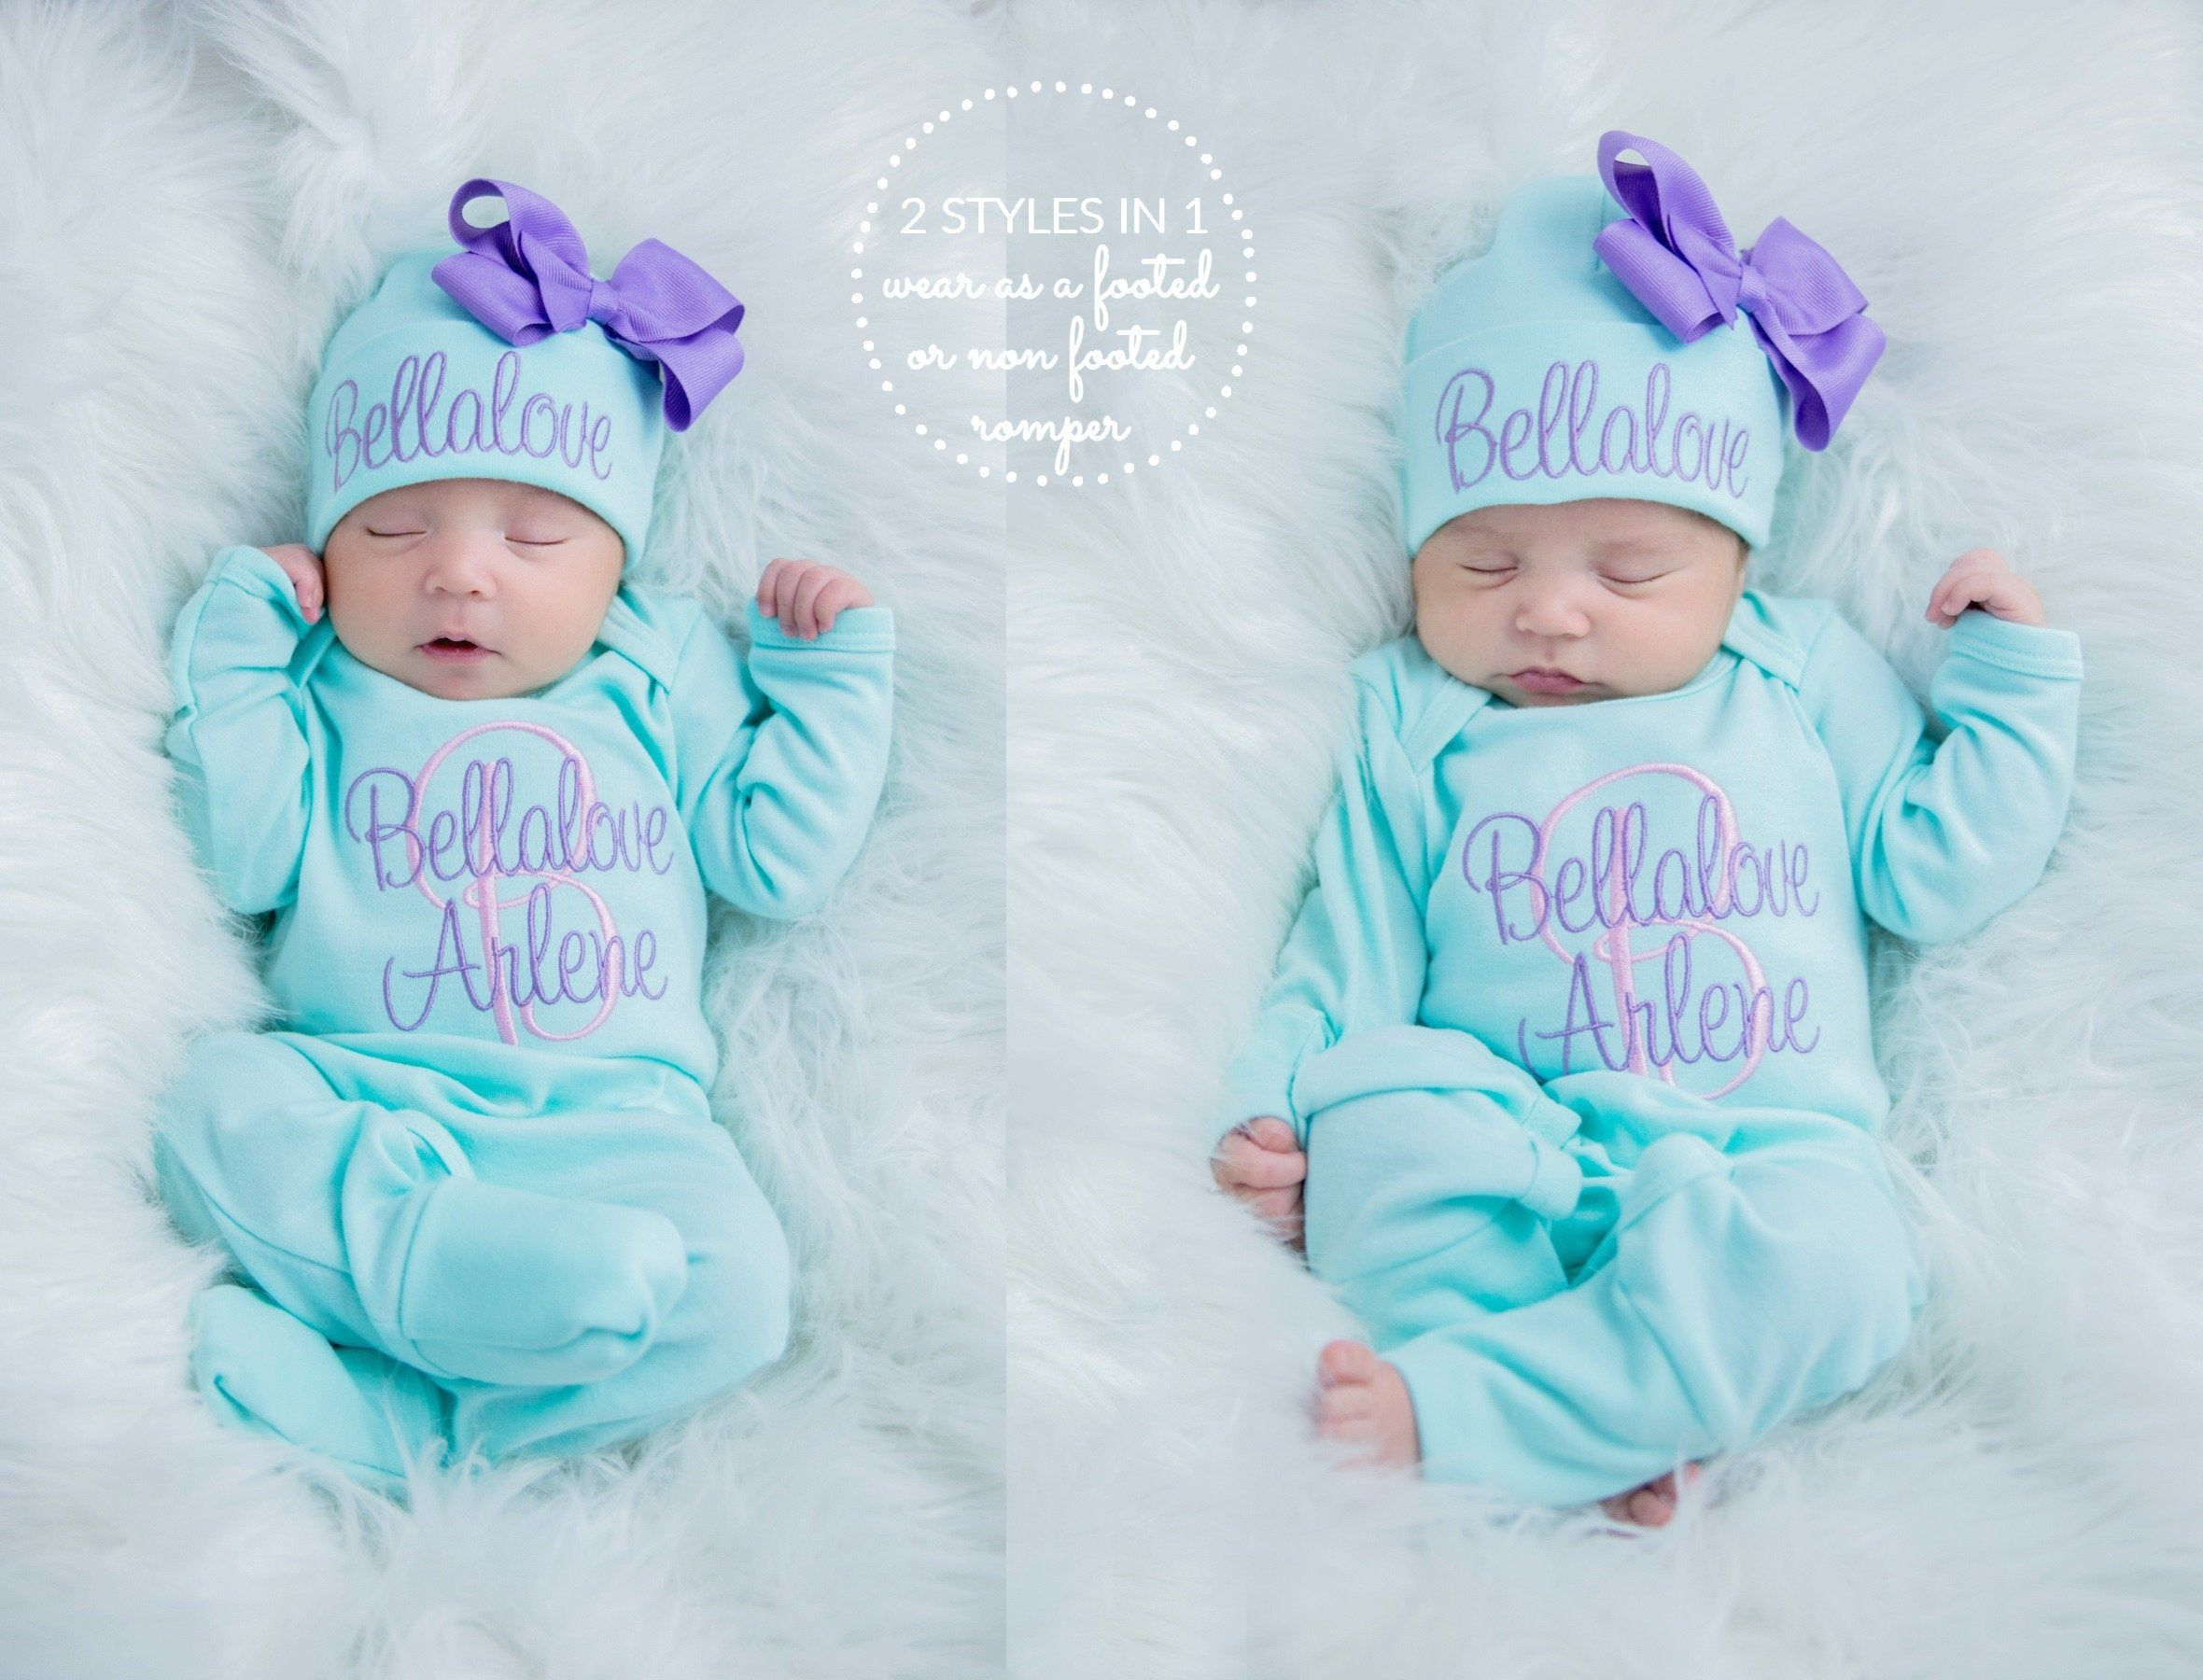 Newborn Girl Coming Home Outfit Newborn Girl Clothes Personalized Baby Girl Gift Personalized Baby Girl Outfit Baby Girl Sleeper